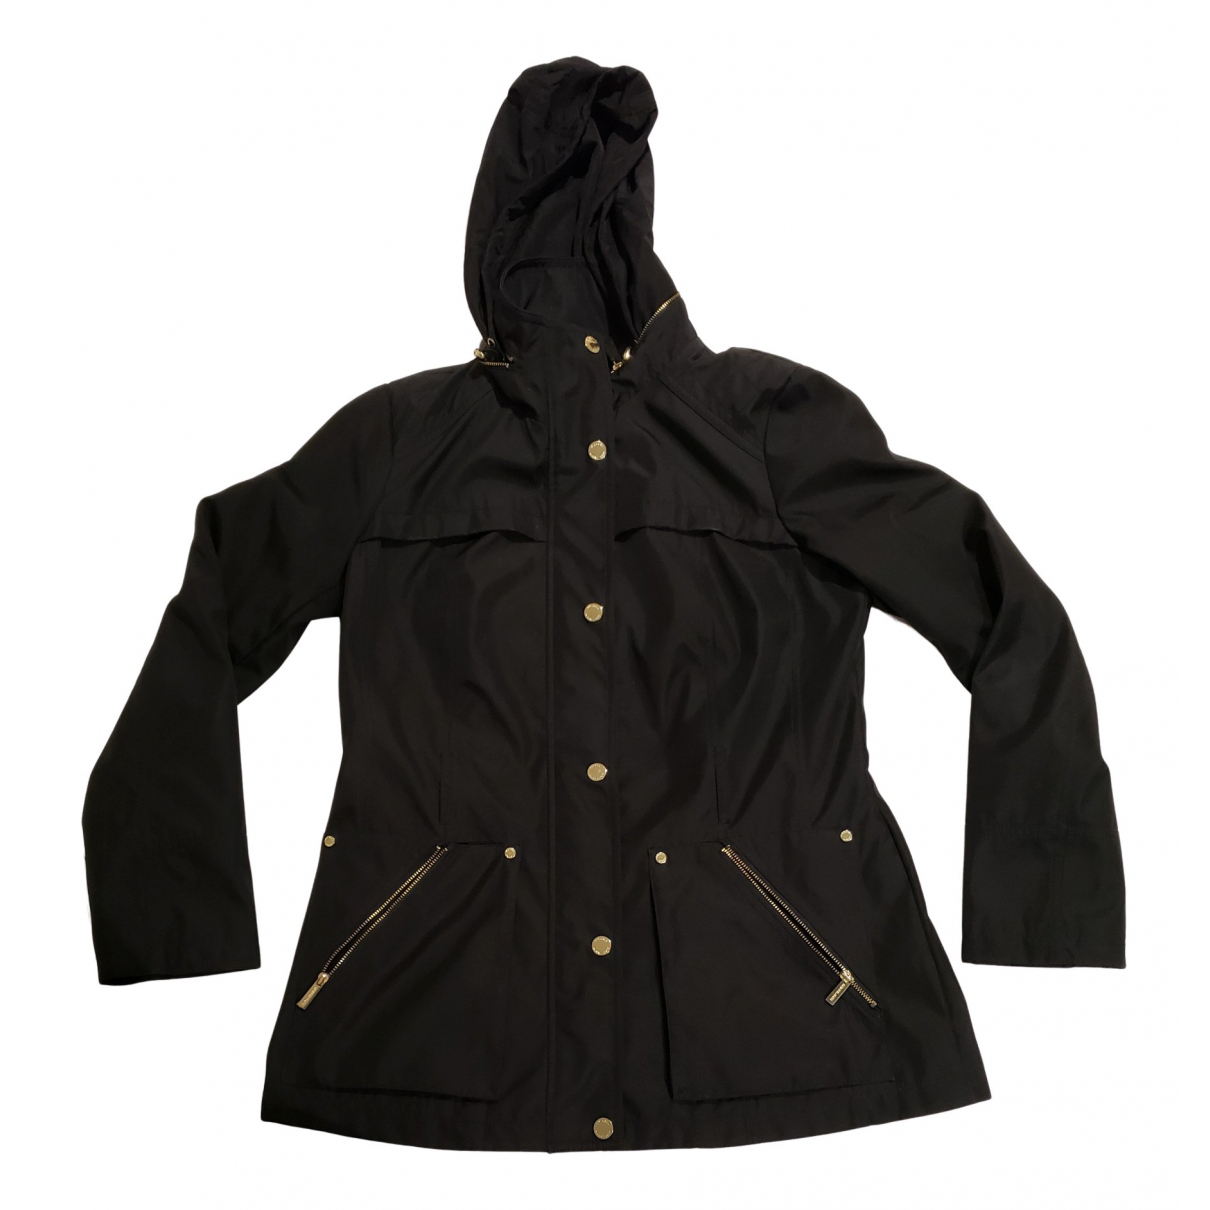 Michael Kors \N Trench in  Schwarz Polyester